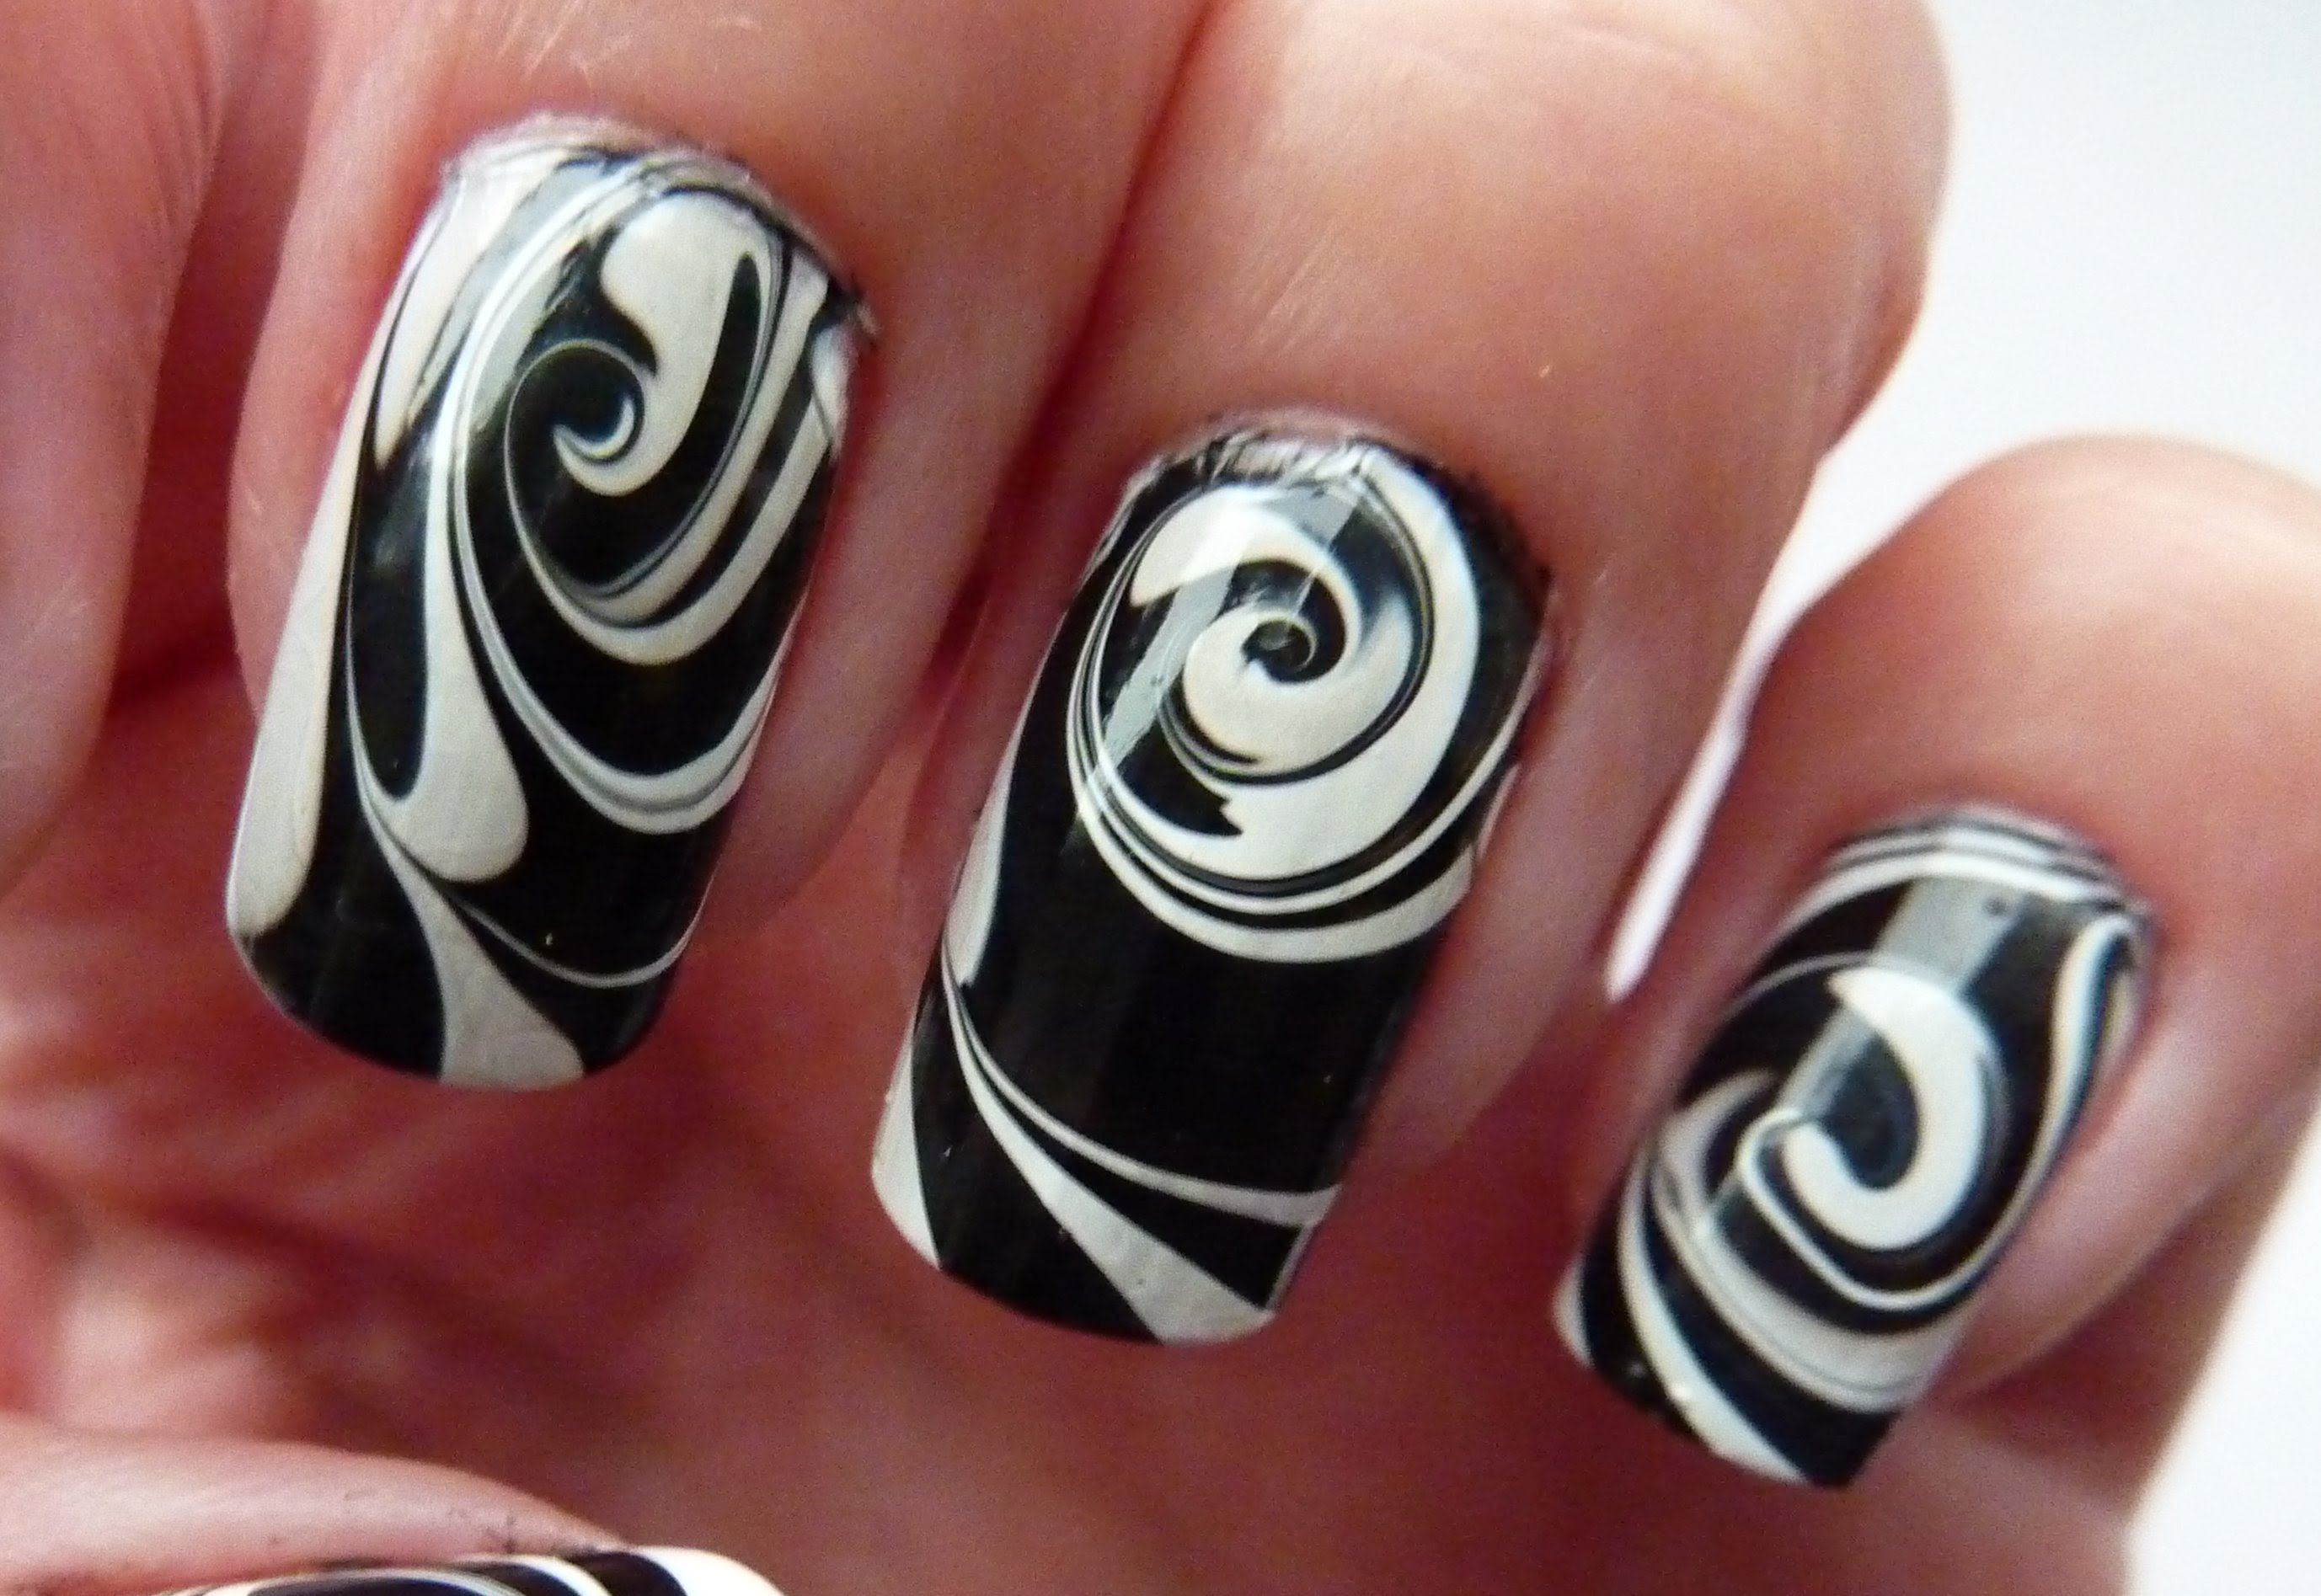 black and white nail art designs 12 25 Unique Black and White Nail Art Designs 2015 25 Unique Black and White Nail Art Designs 2015 black and white nail art designs 12